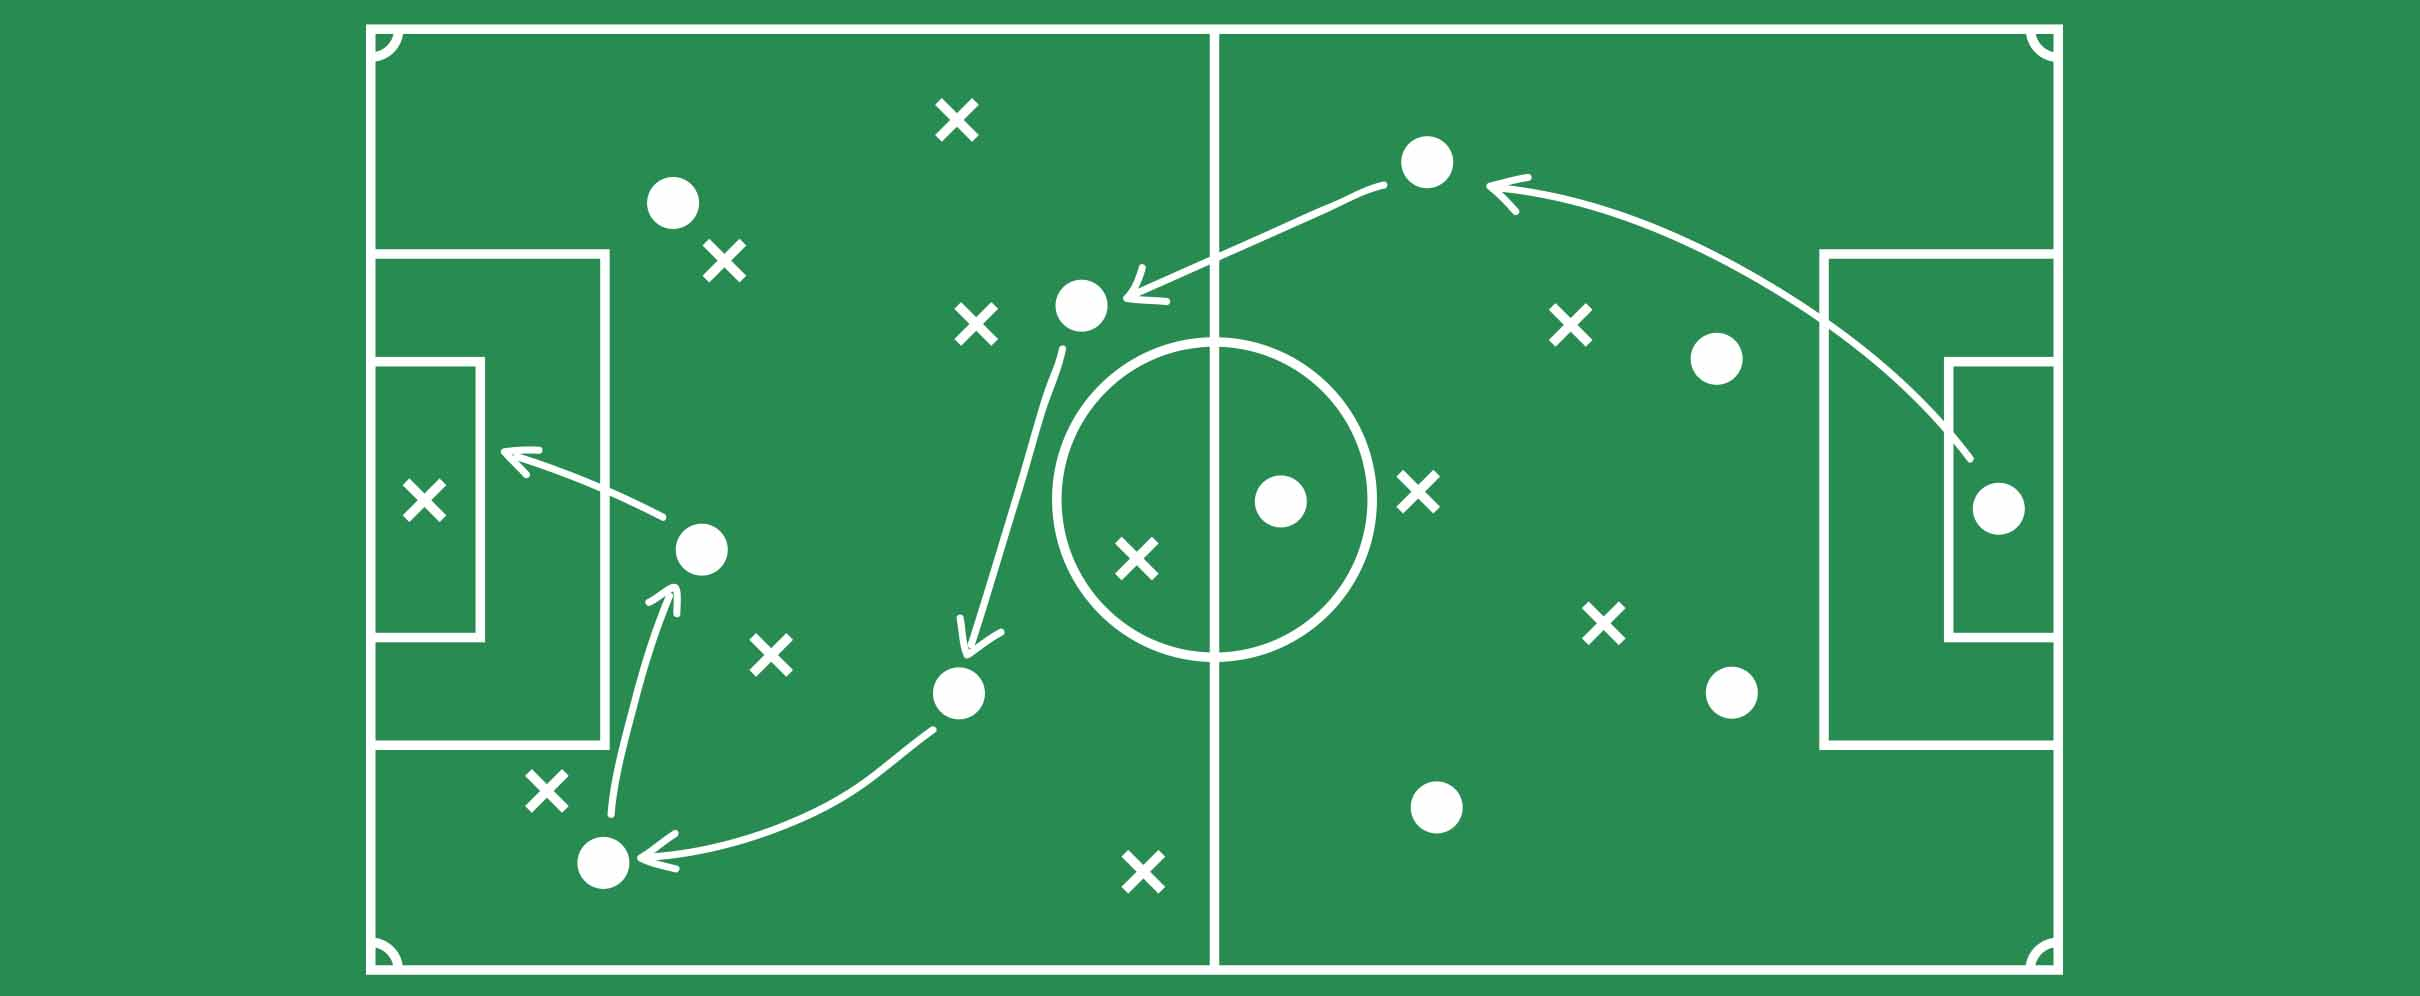 Green and white game plan